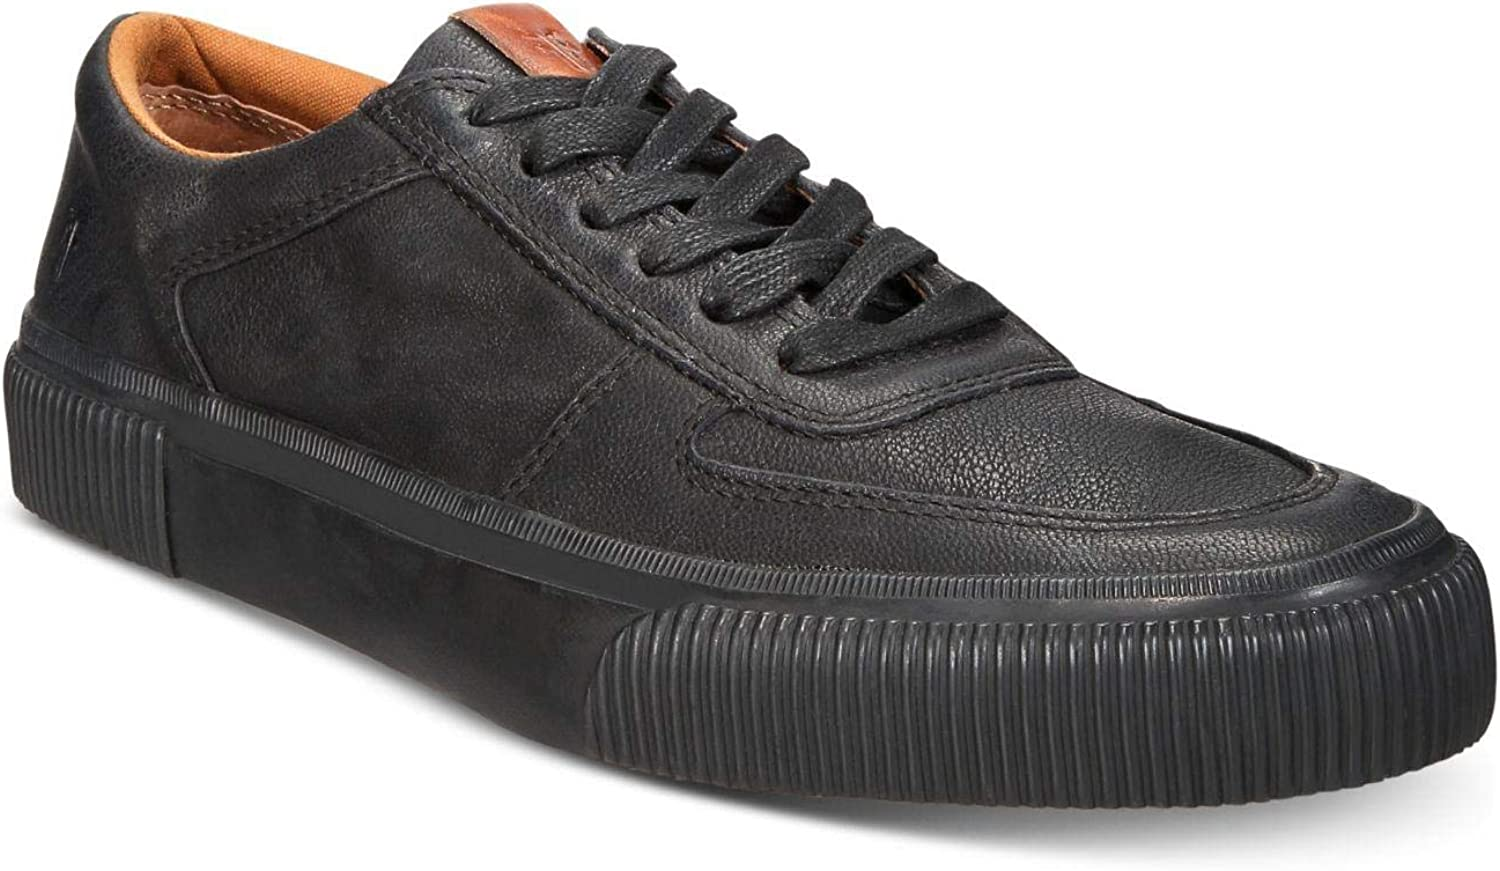 Frye Mens Shawn Low Top Lace Up Fashion Sneakers